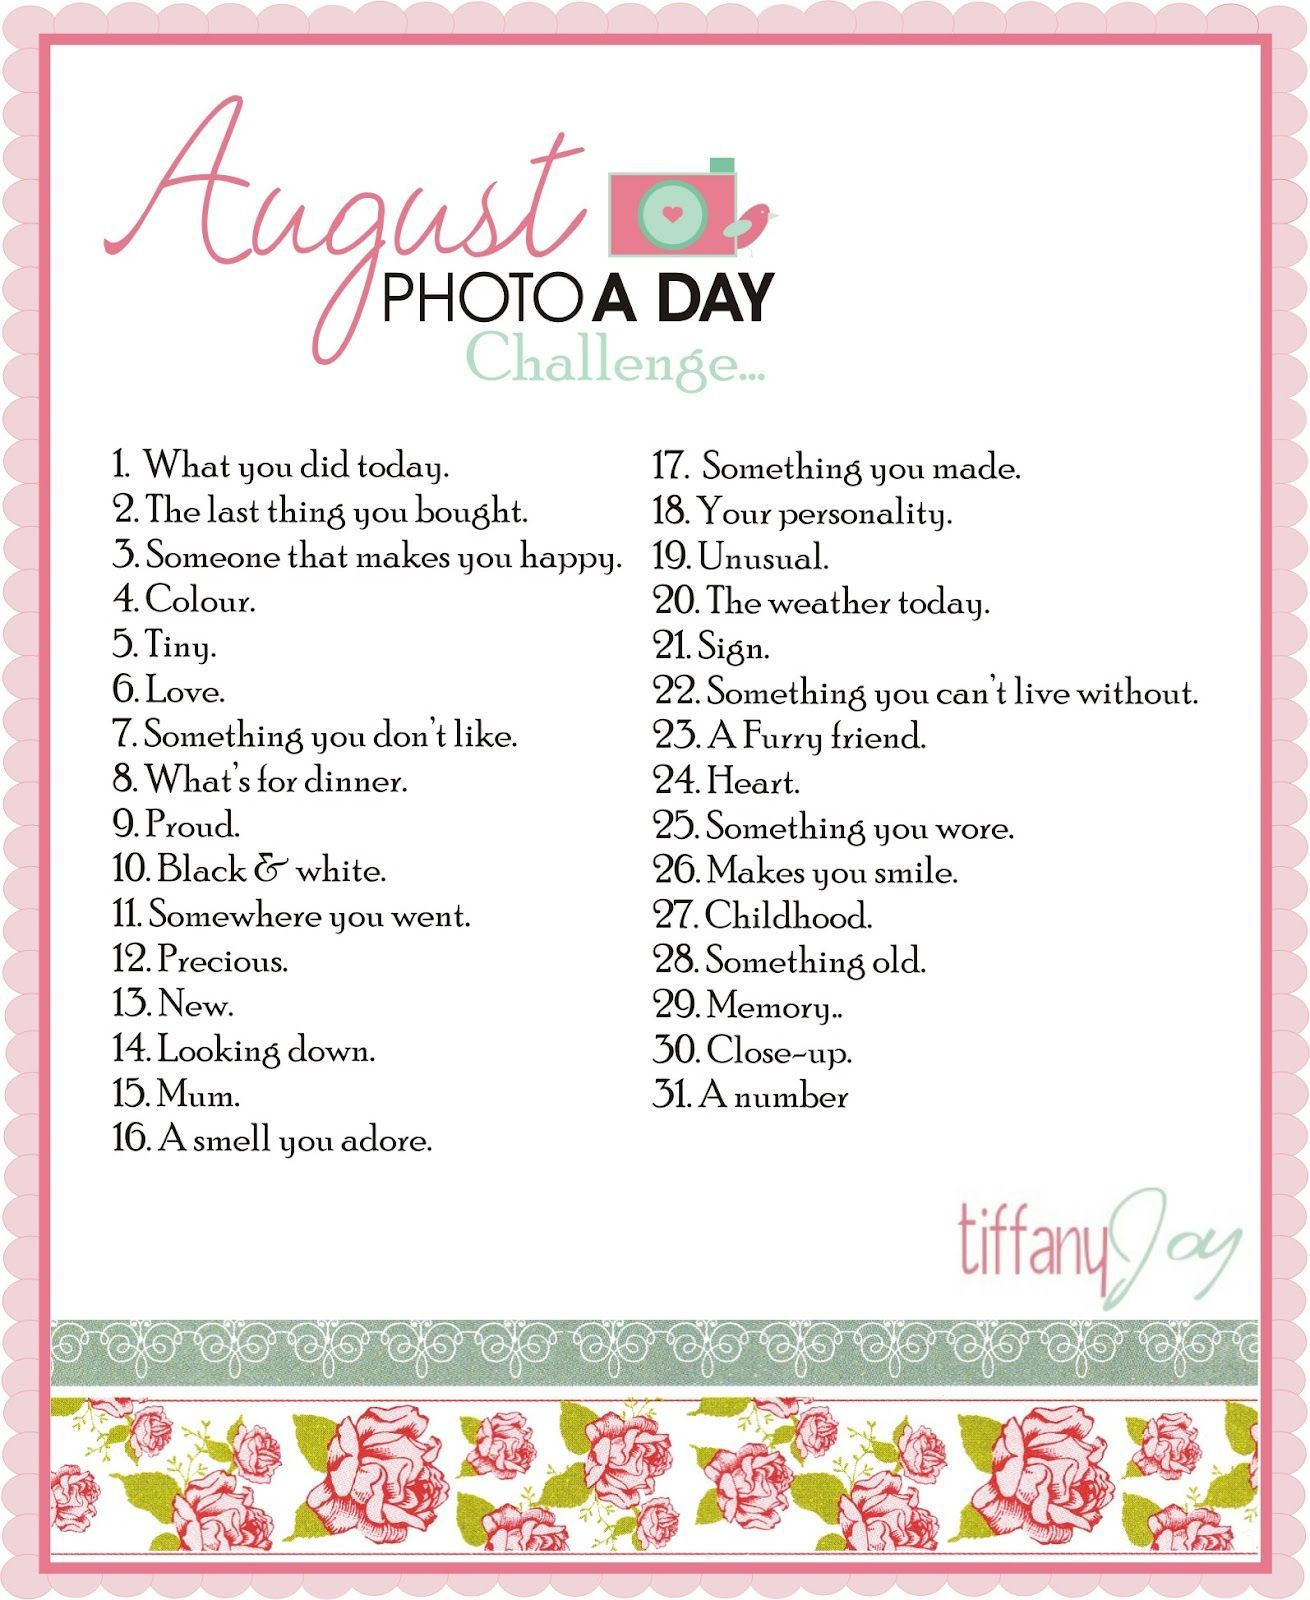 Photo a day Challenge - looks really fun and I've never done a full photo a day challenge